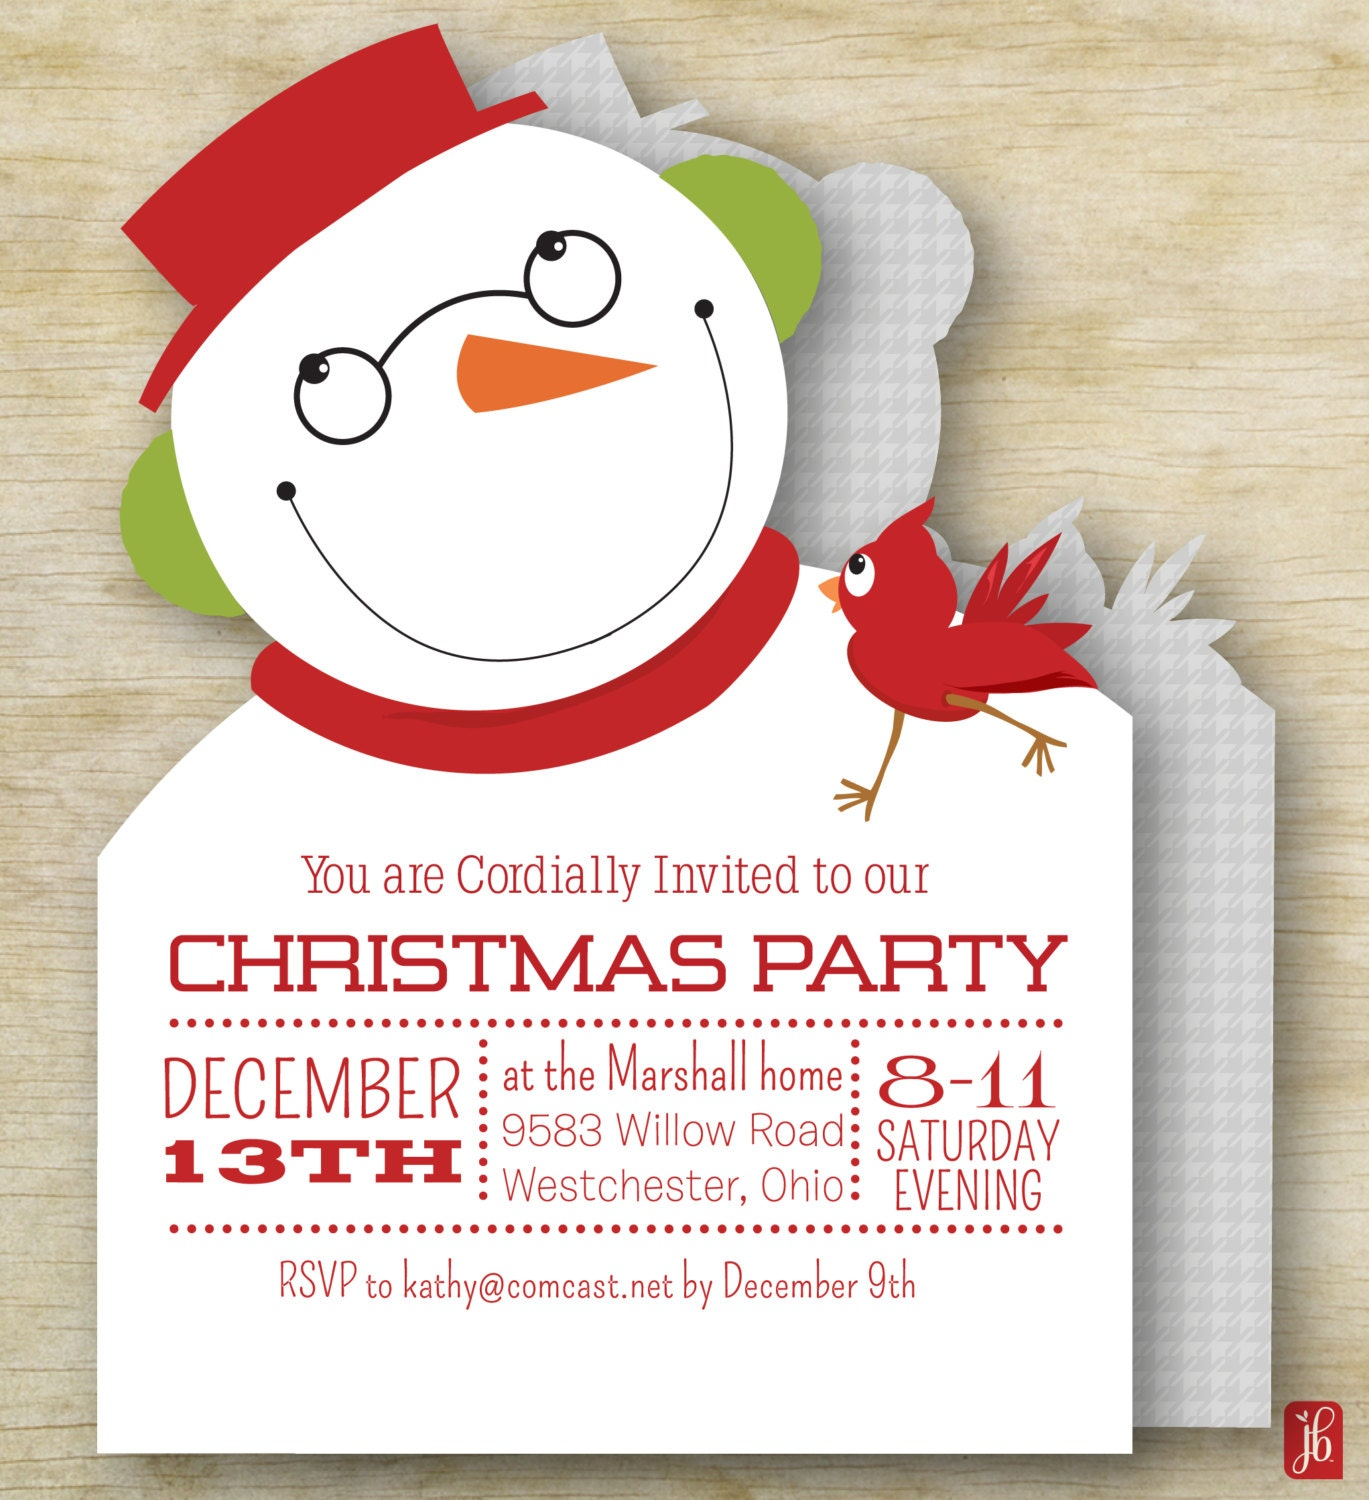 Snowman and Cardinal Custom Christmas Invitation for a Holiday Party ...